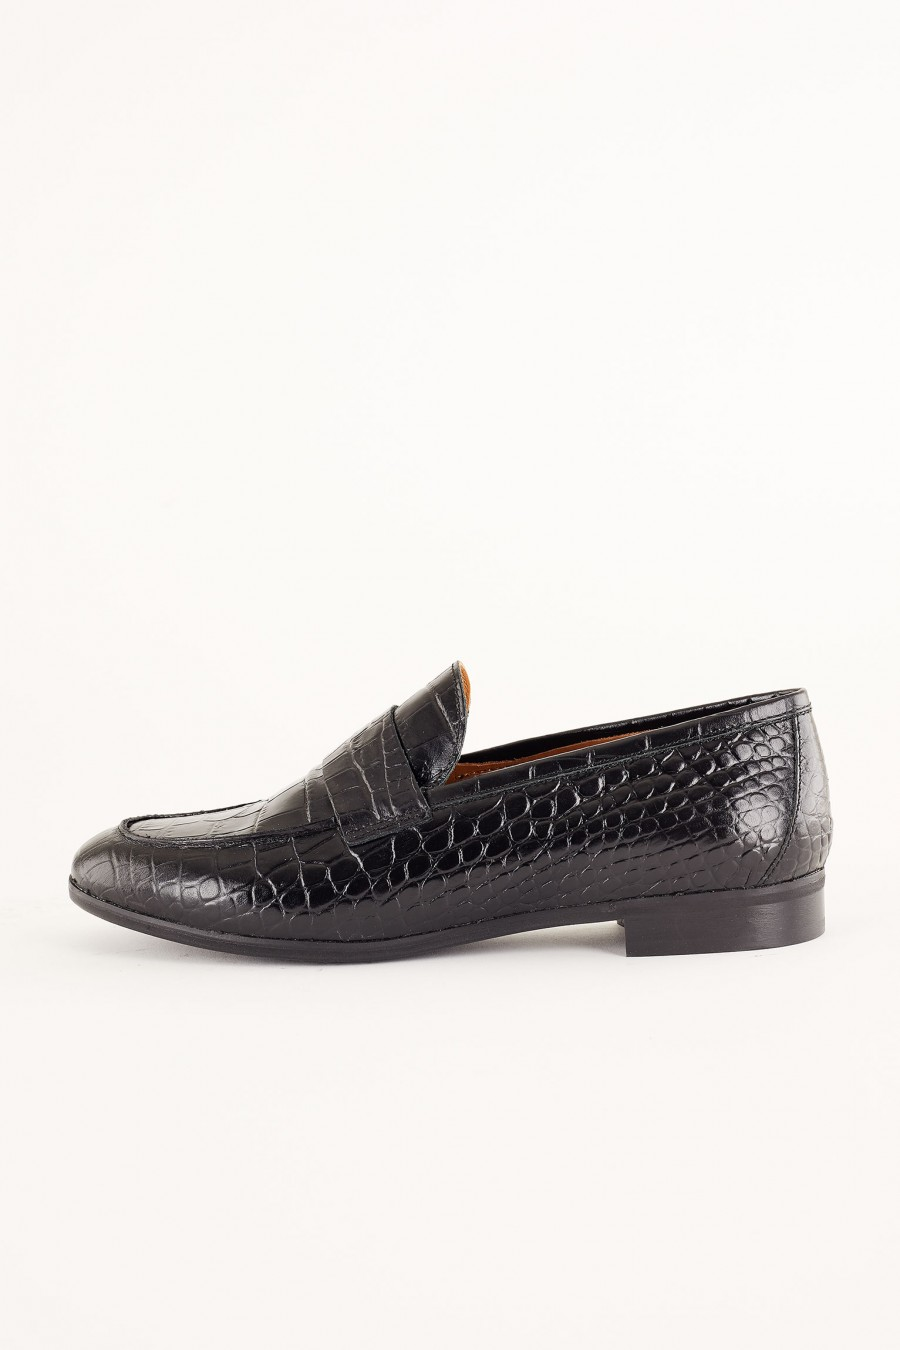 leather loafer with low heel